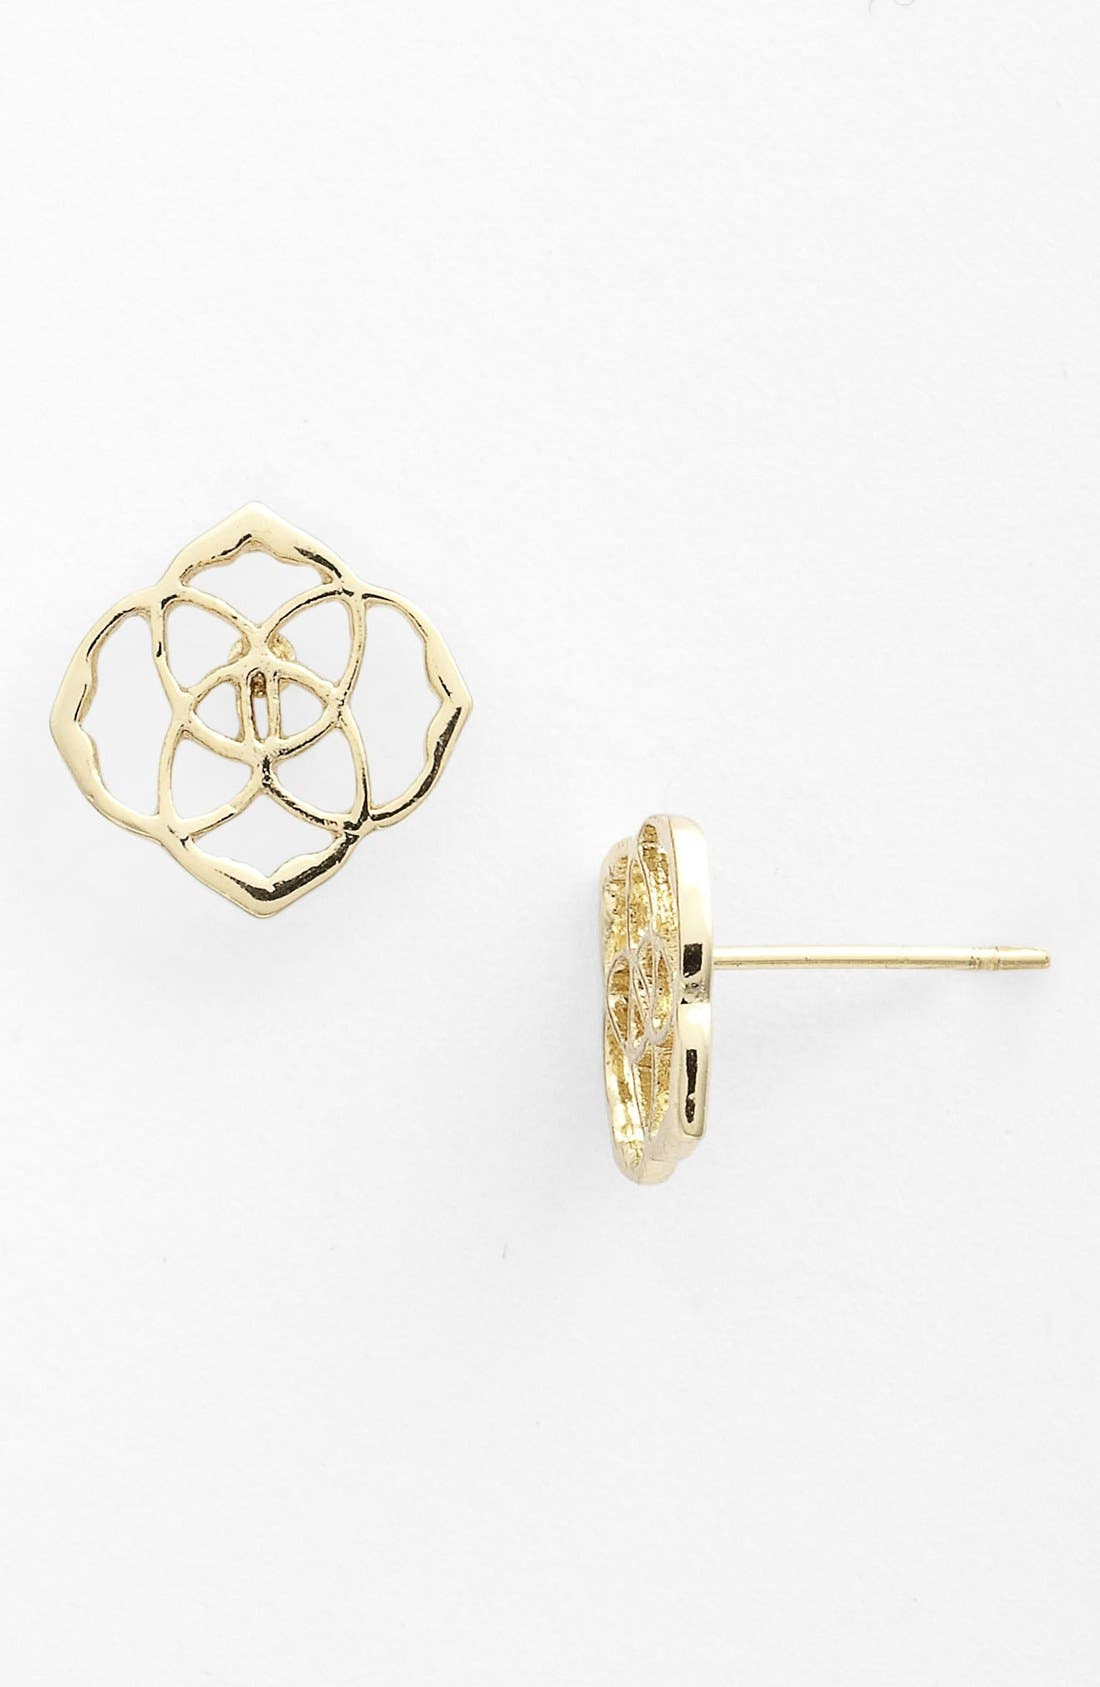 Alternate Image 1 Selected - Kendra Scott 'Dira' Stud Earrings